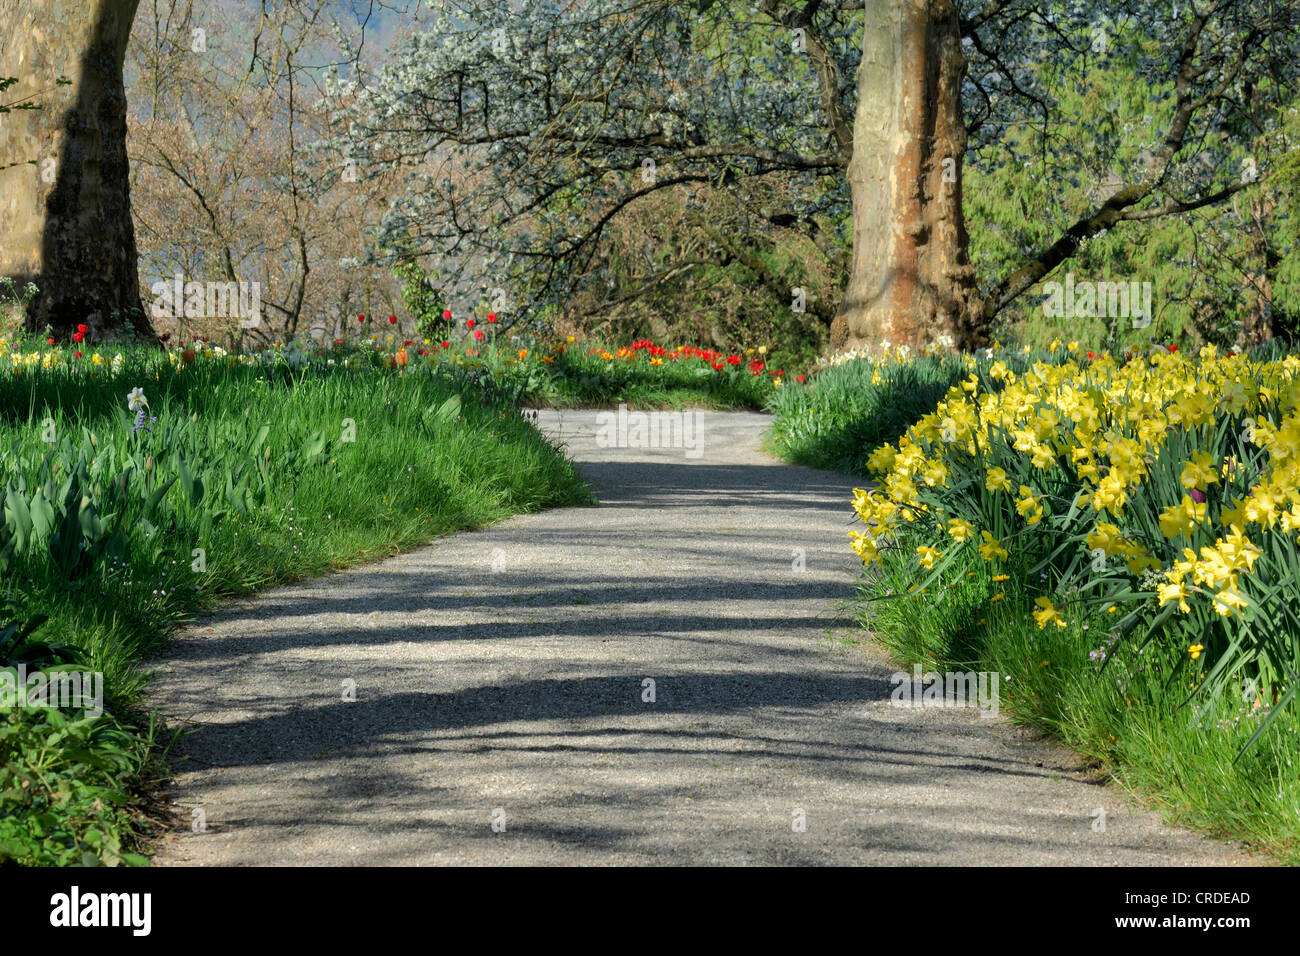 common daffodil narcissus pseudonarcissus tarred path between common daffodil narcissus pseudonarcissus tarred path between blooming narcissus and tulips baden wuerttemberg lake constance